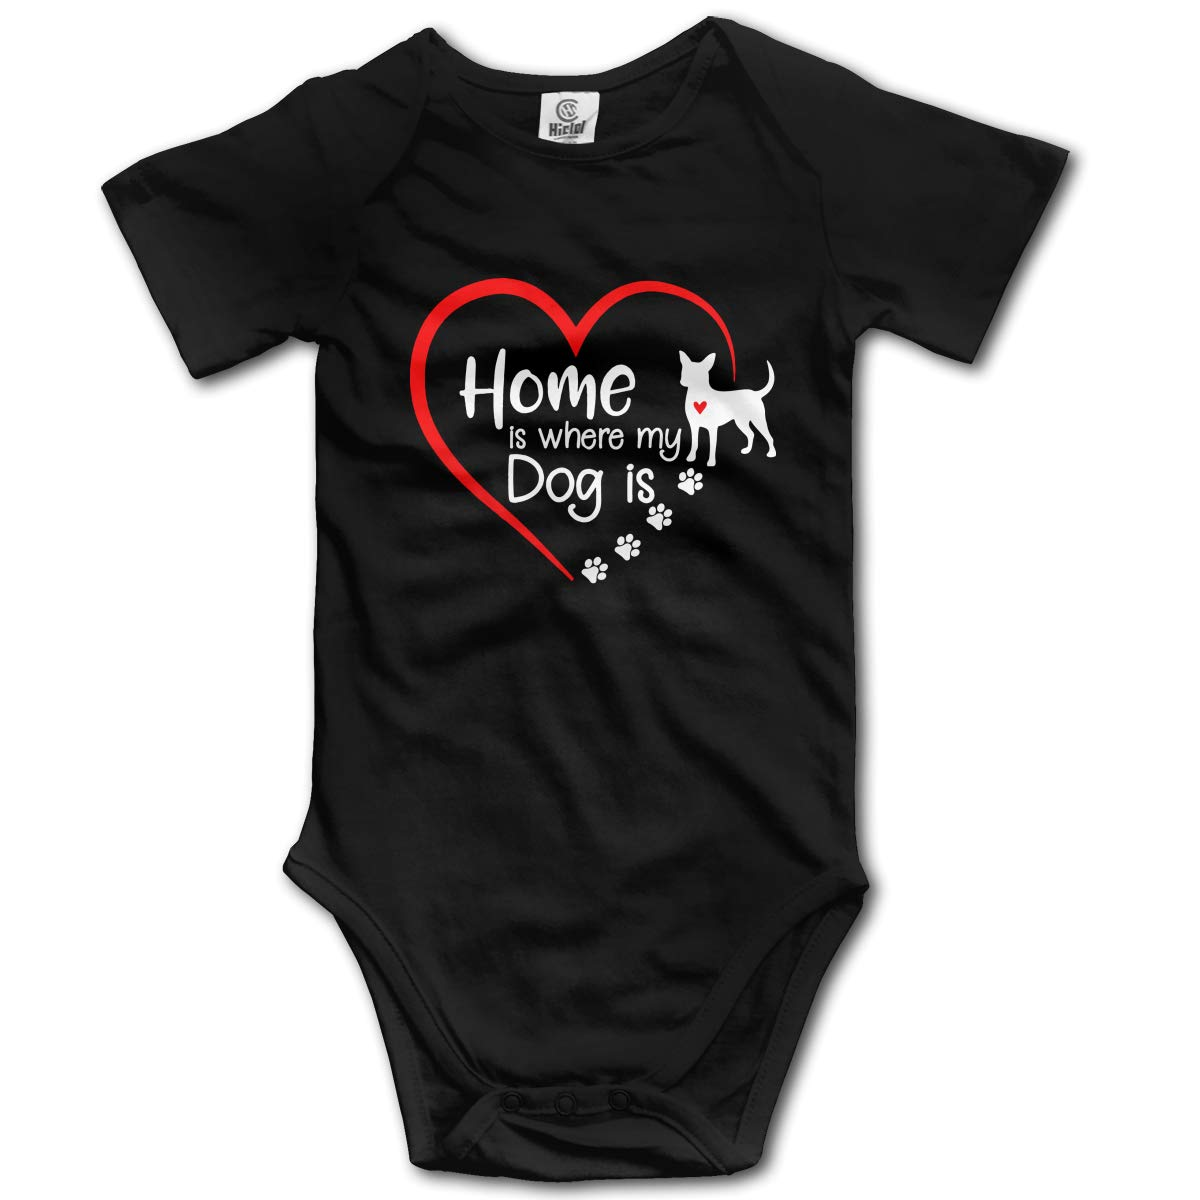 Home is Where My Dog is Infant Baby Boys Girls 100/% Organic Cotton Layette Bodysuit 0-2T